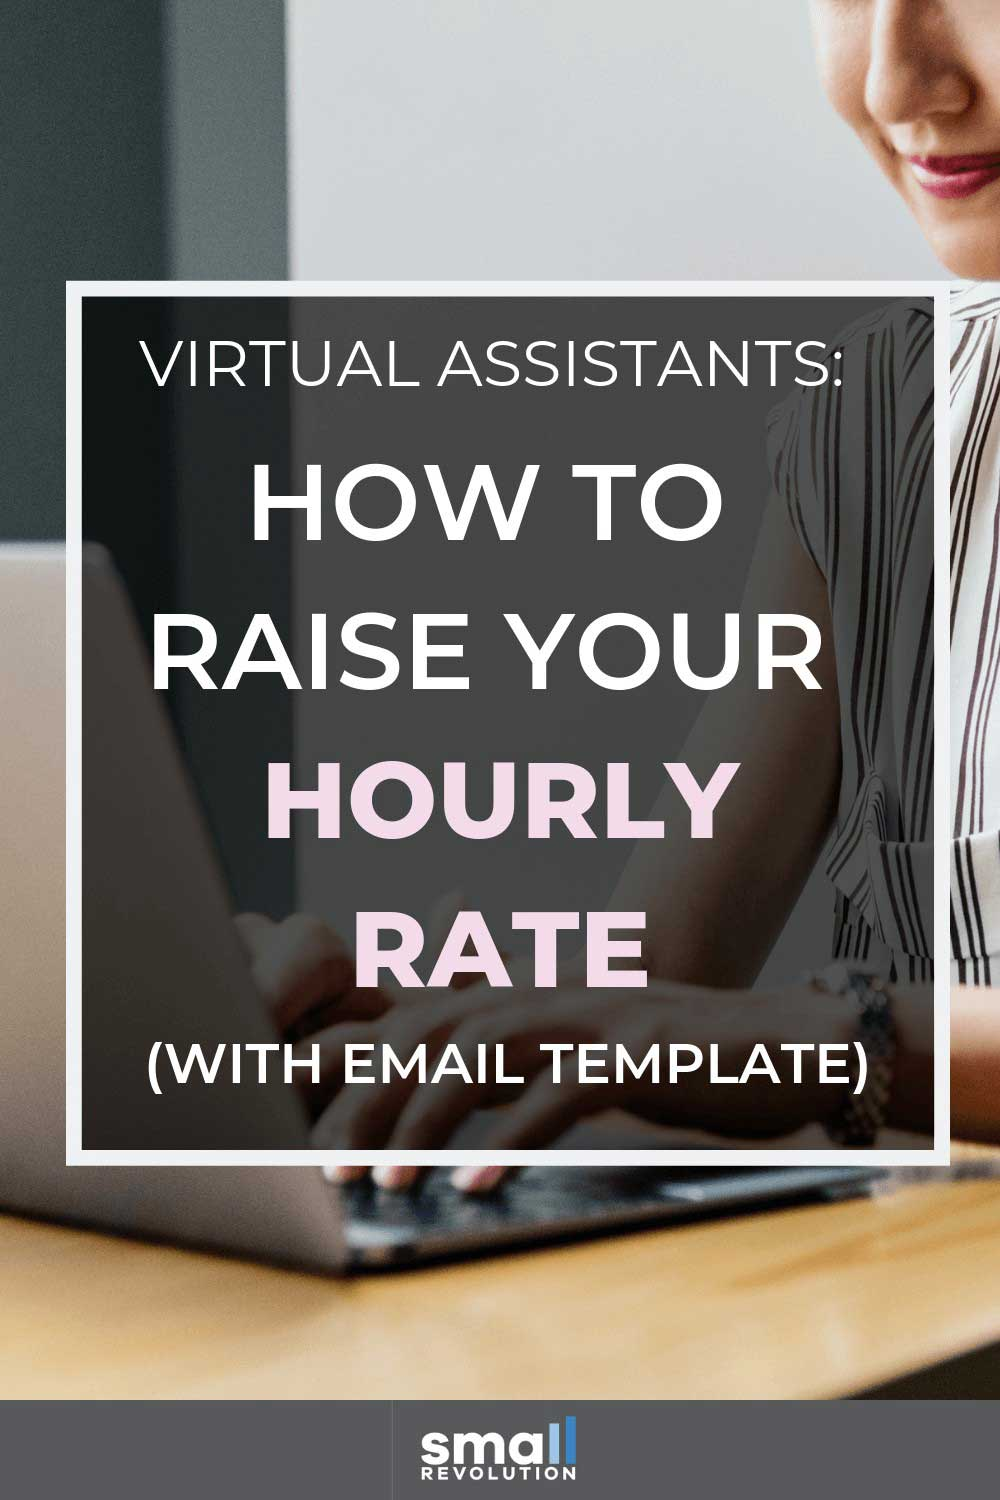 Virtual Assistant: How to raise your hourly rate